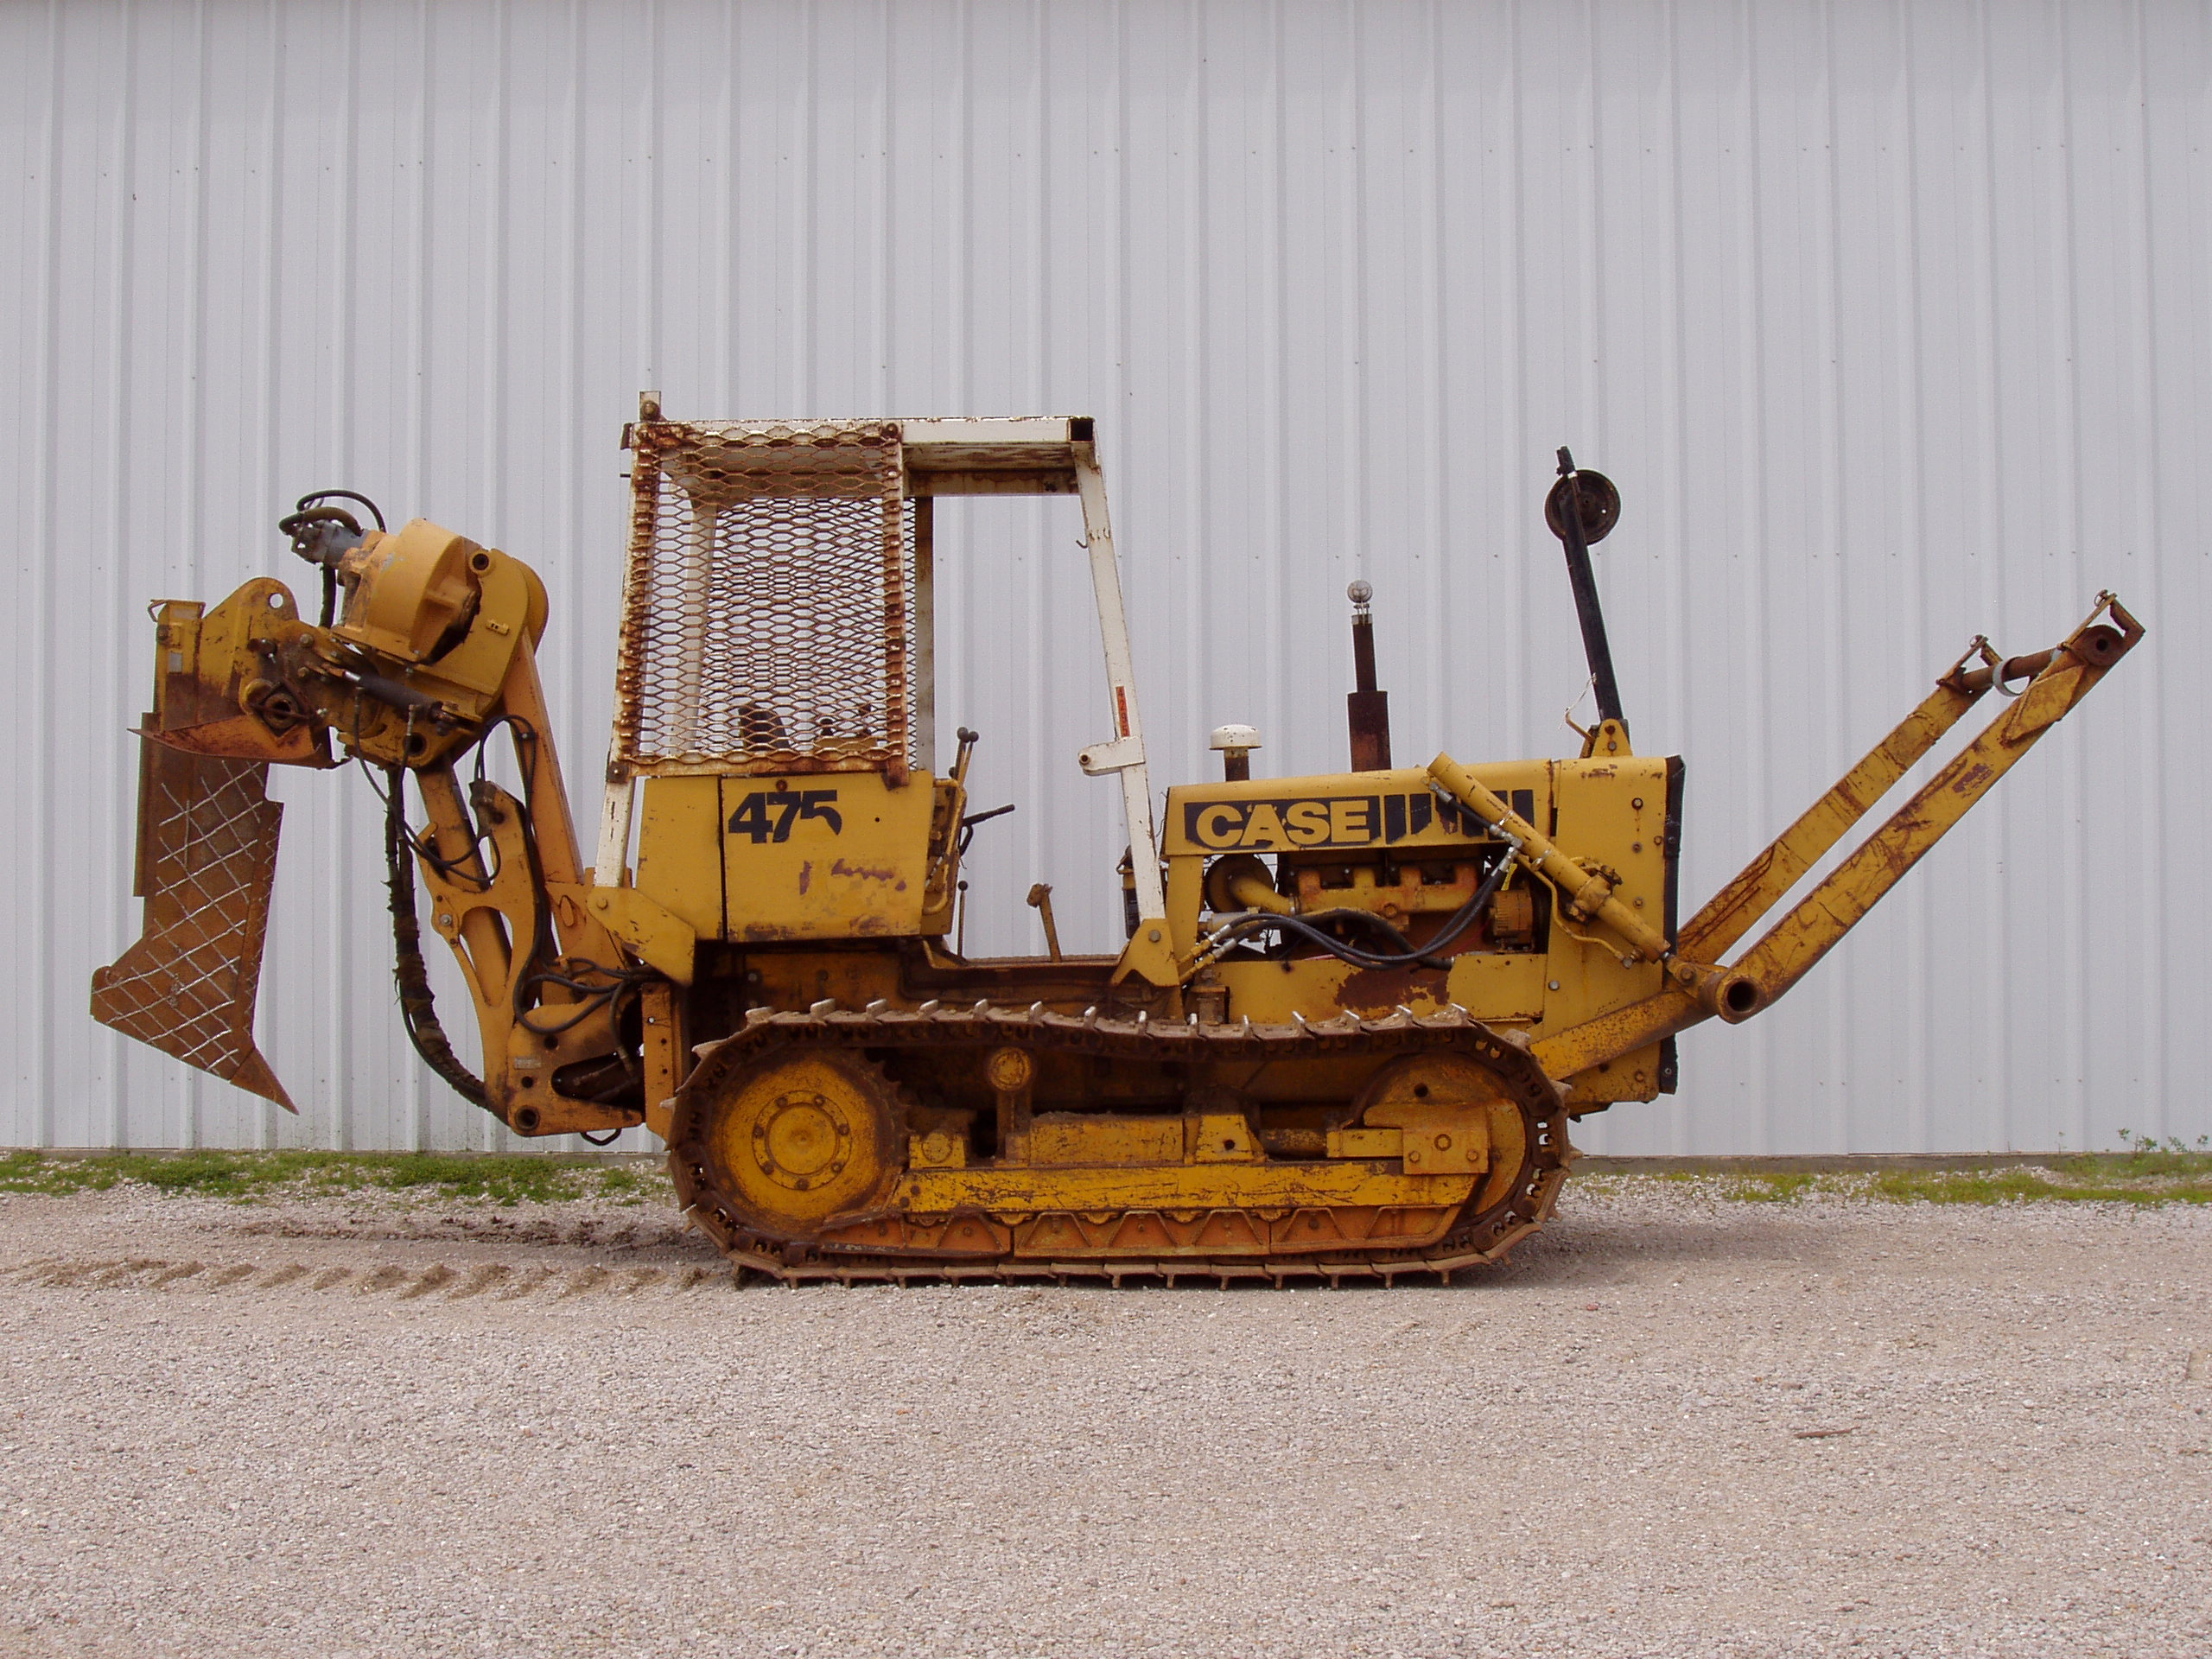 Case 475 cable plow with Case 860 plow attachment from Garner Equipment